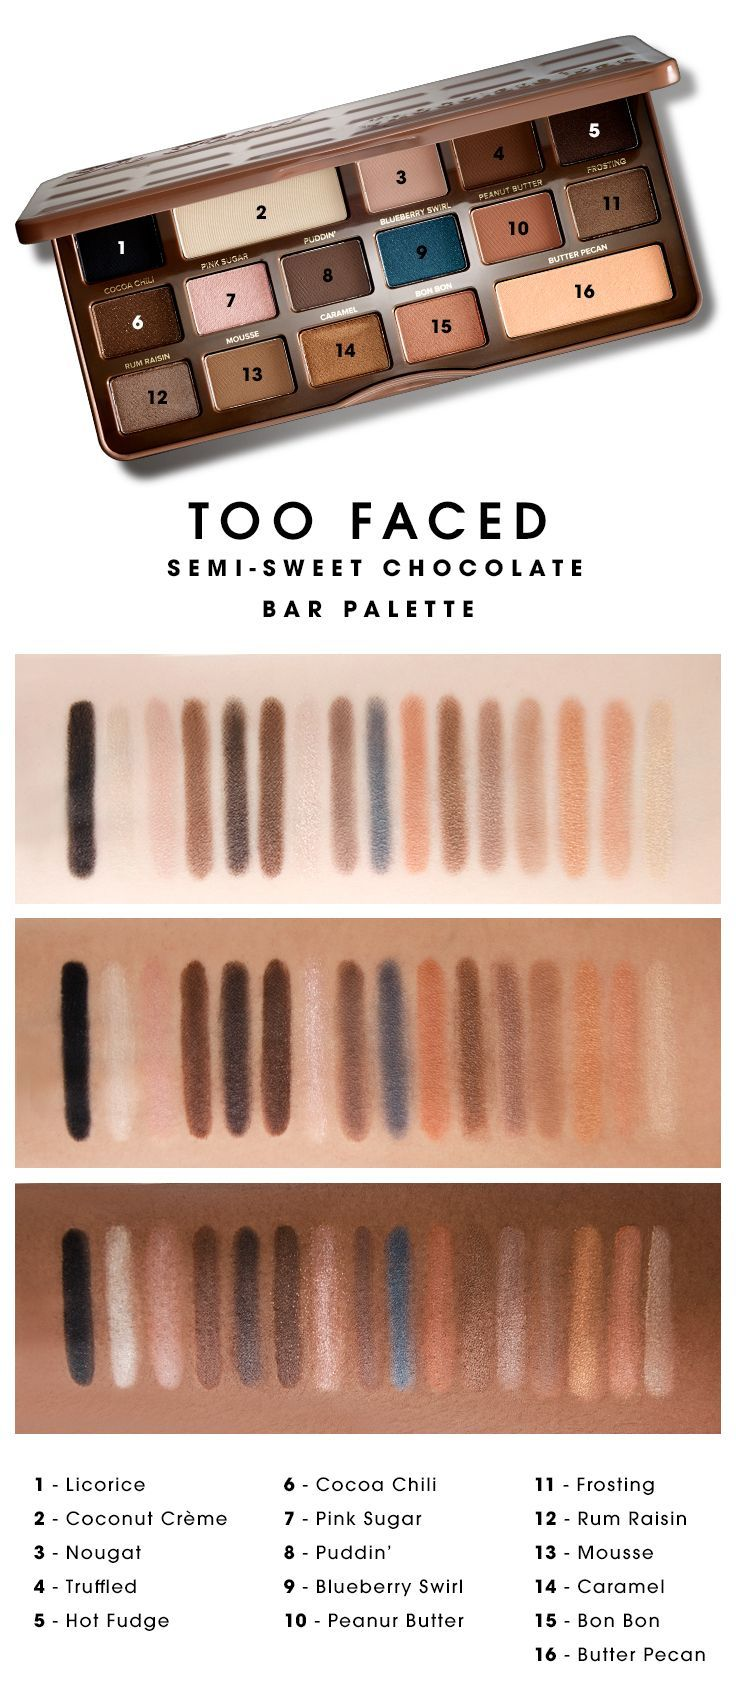 We swatched the Too Faced Semi-Sweet Chocolate Bar Palette to see how the colors looked on different skin tones. What do you think? #Sephora #swatches